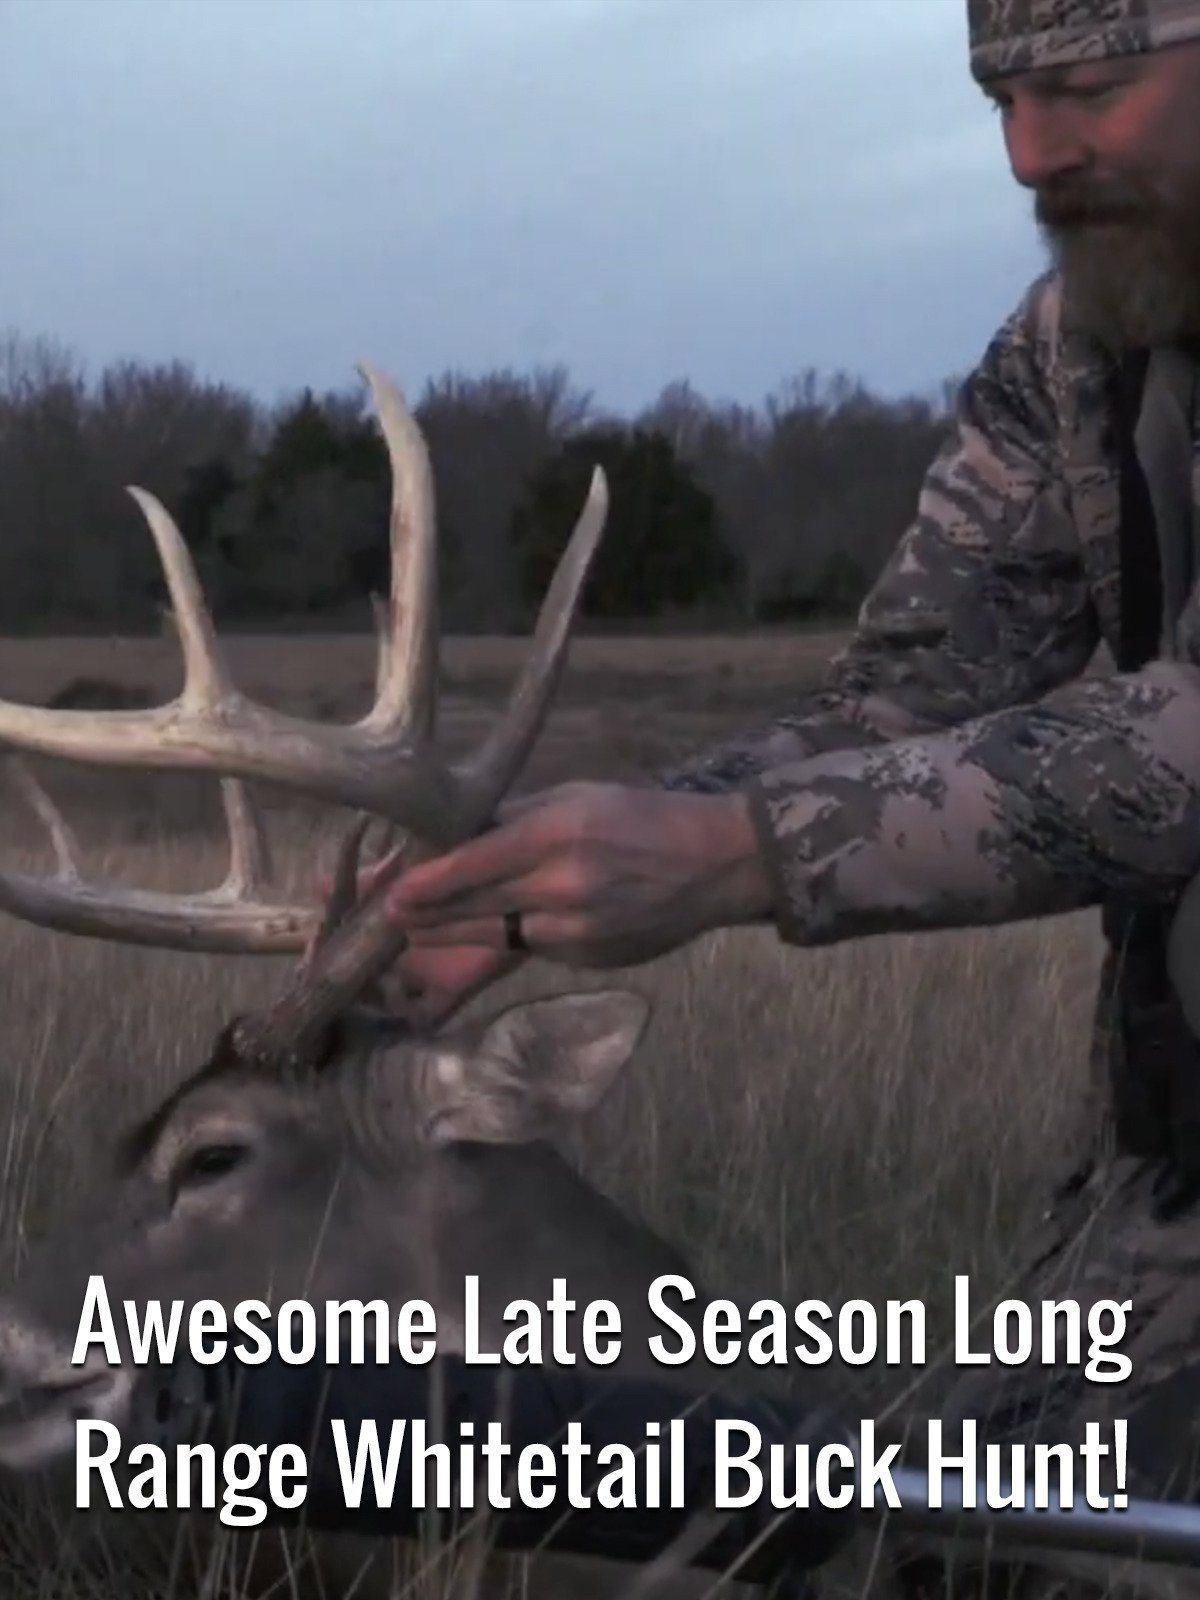 Awesome Late Season Long Range Whitetail Buck Hunt!